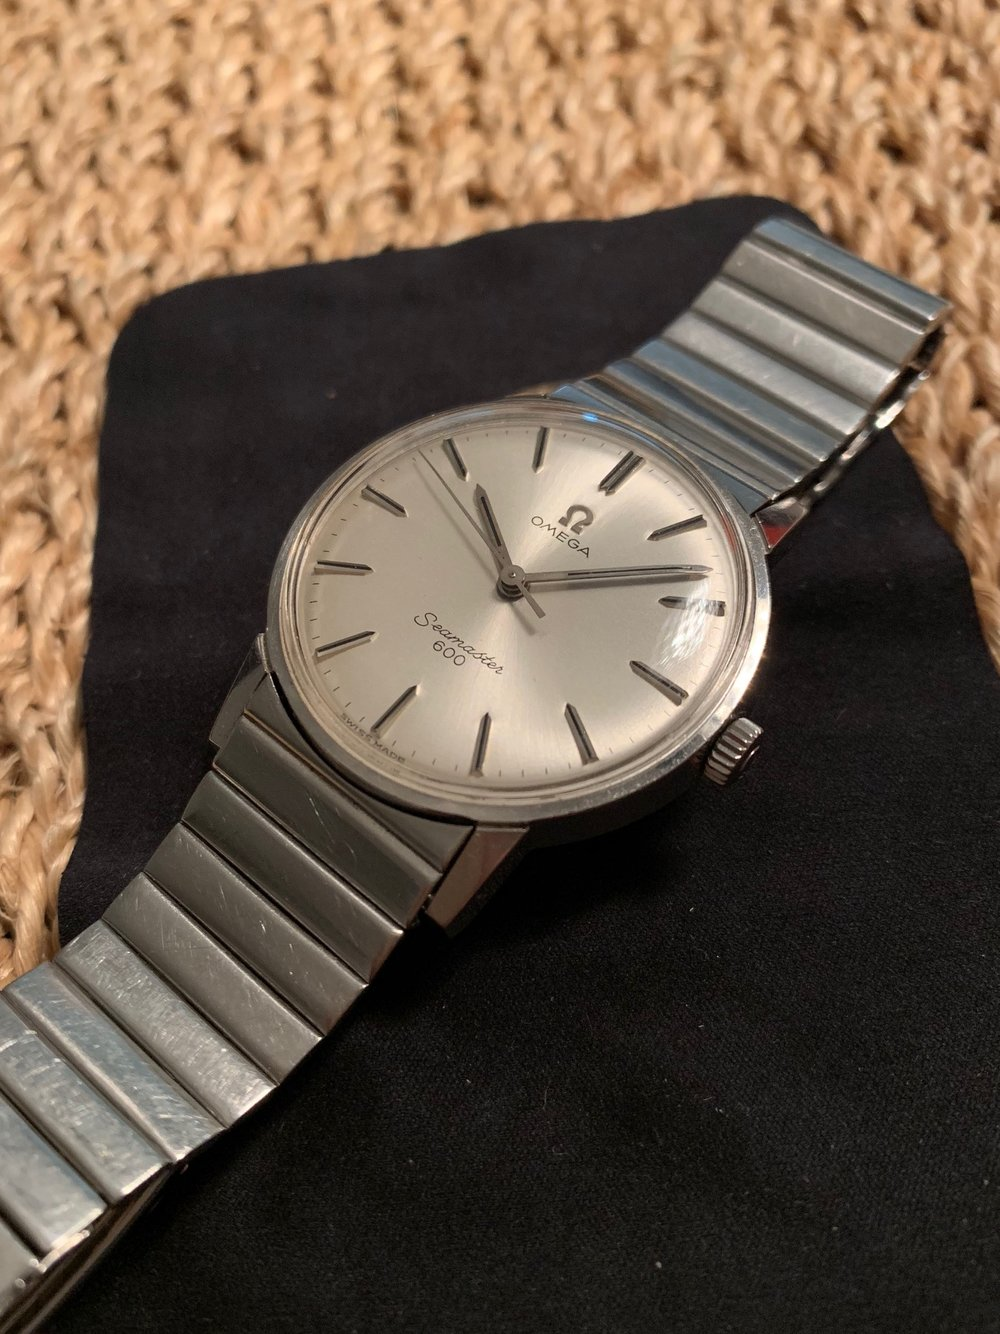 Sharp Case and Clean Dial